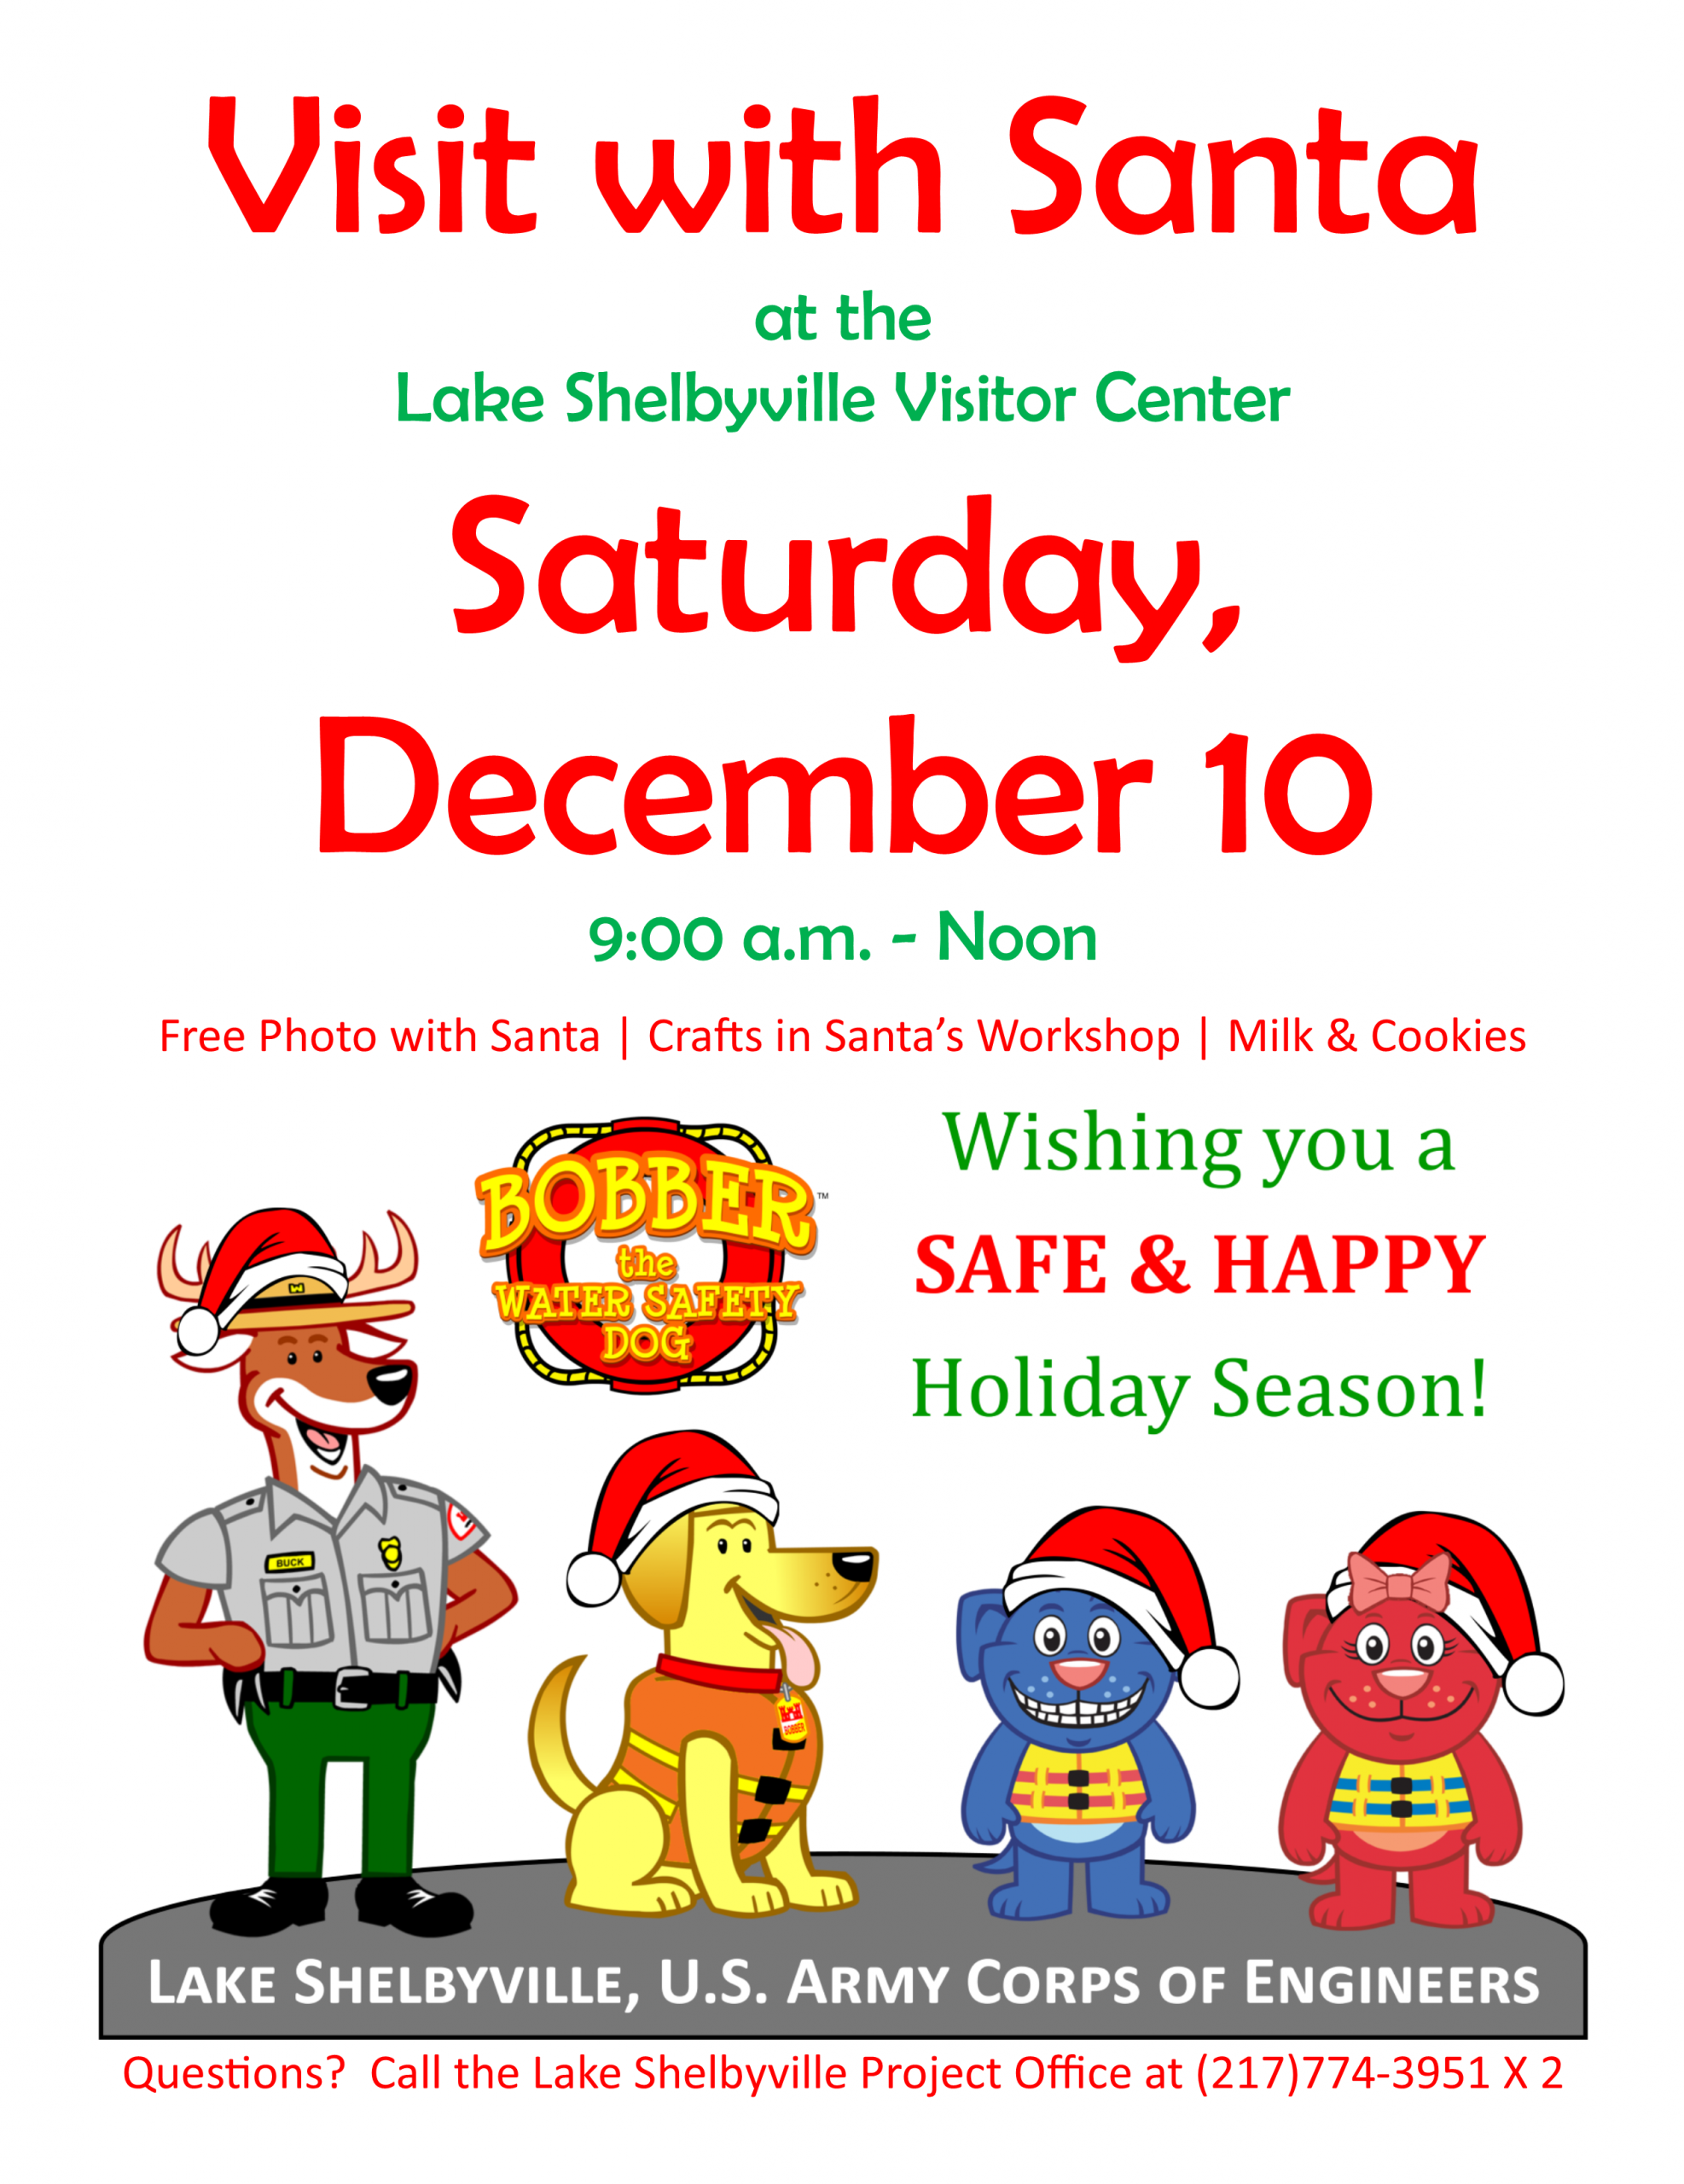 Santa Claus is coming to town on Saturday, December 10